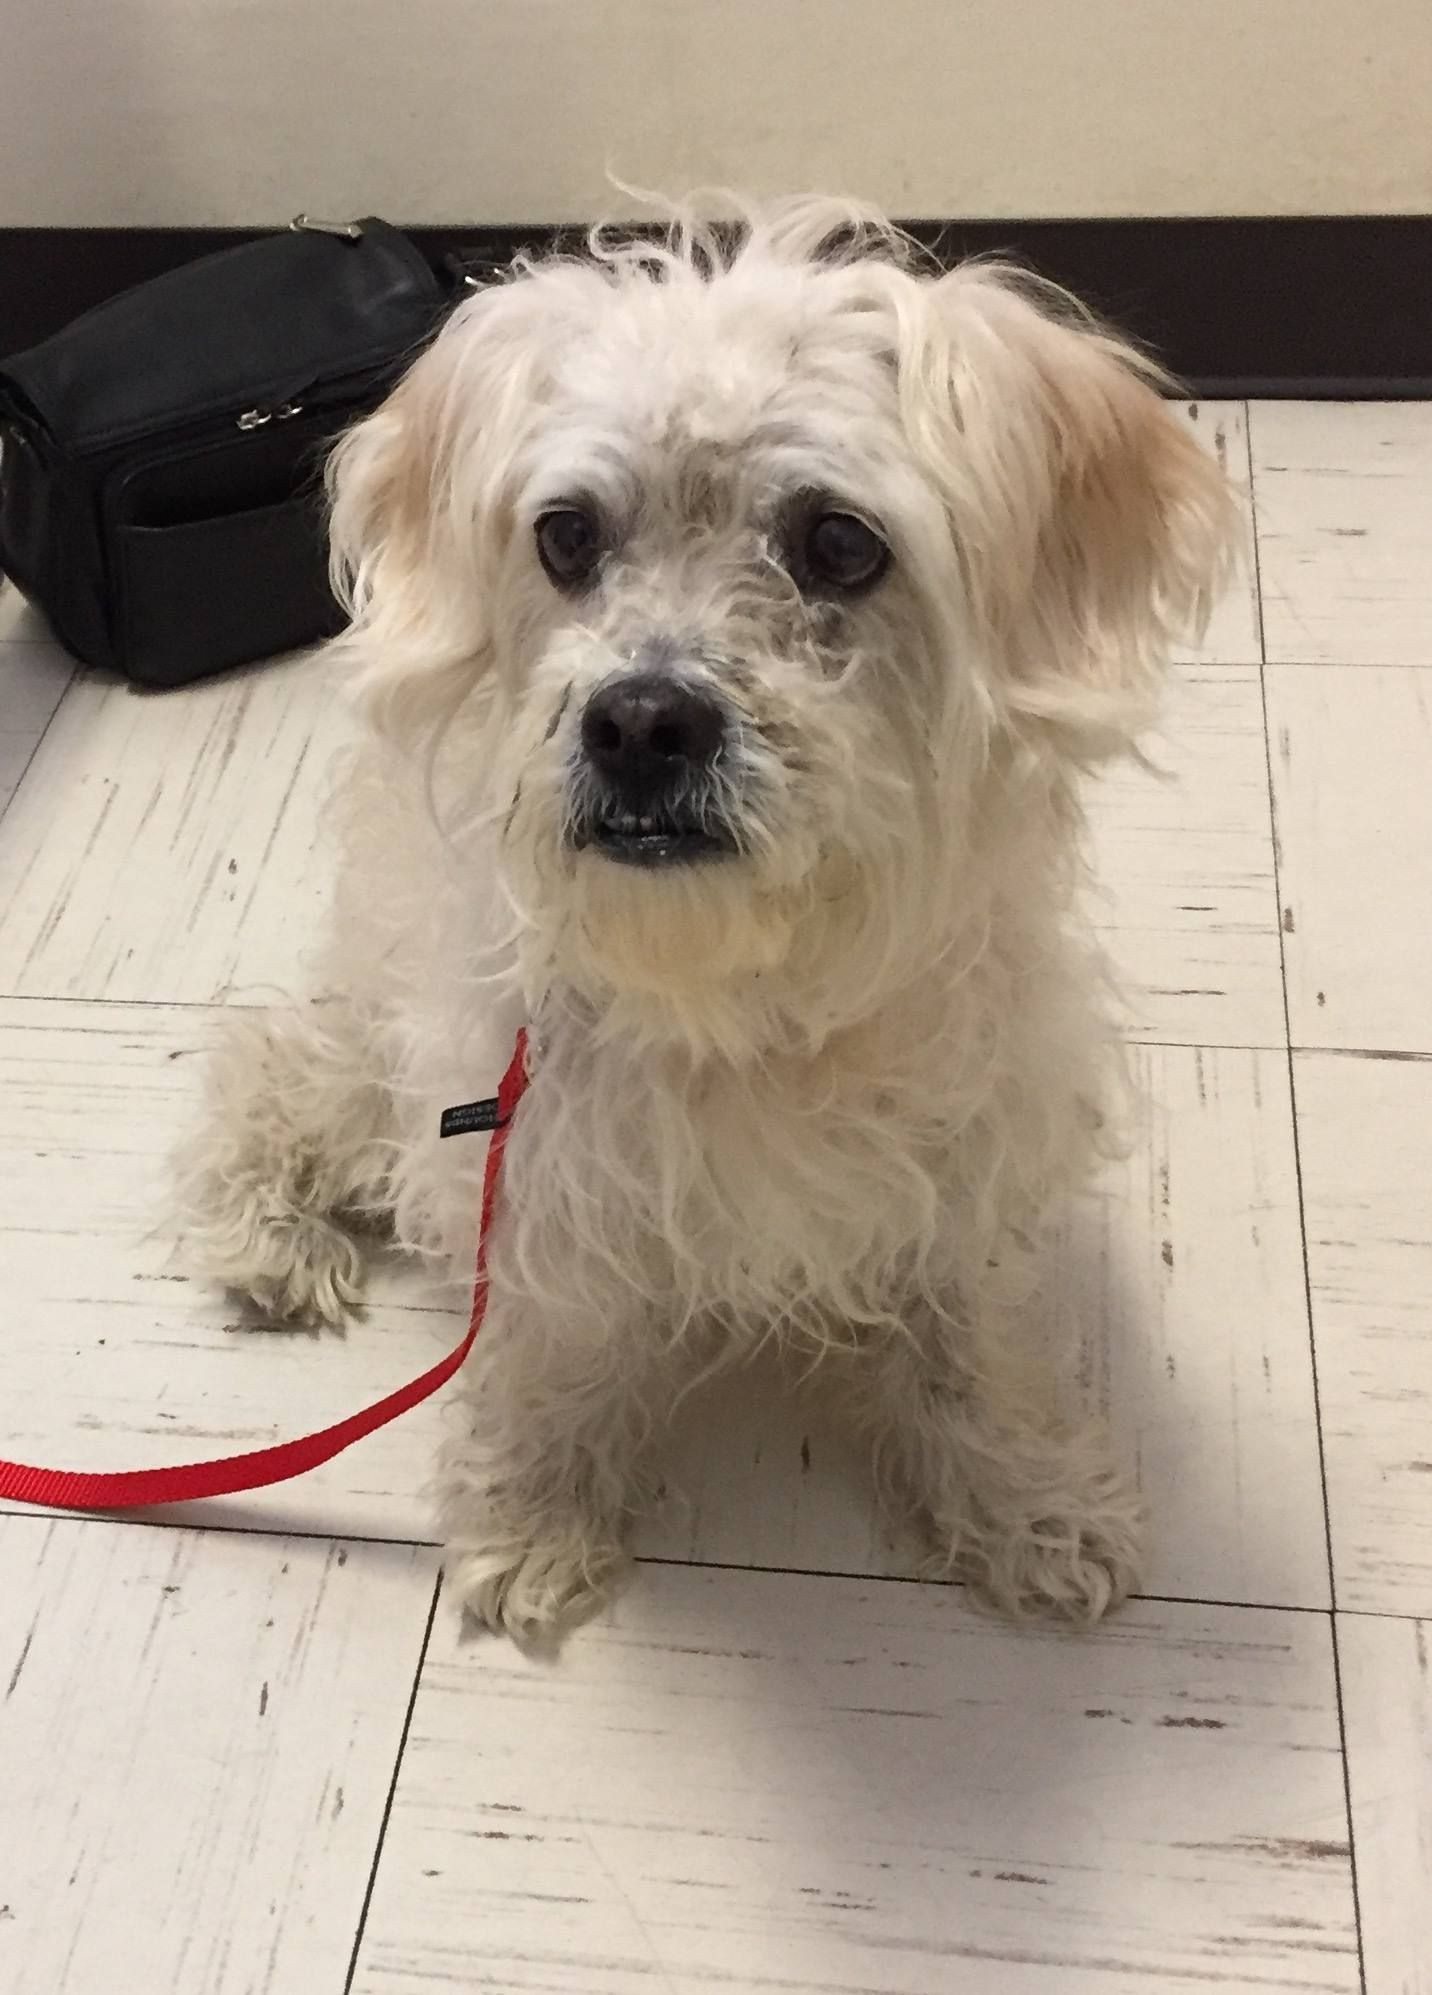 Poodle Rescue Connecticut, Inc  added 3 new photos  March 29